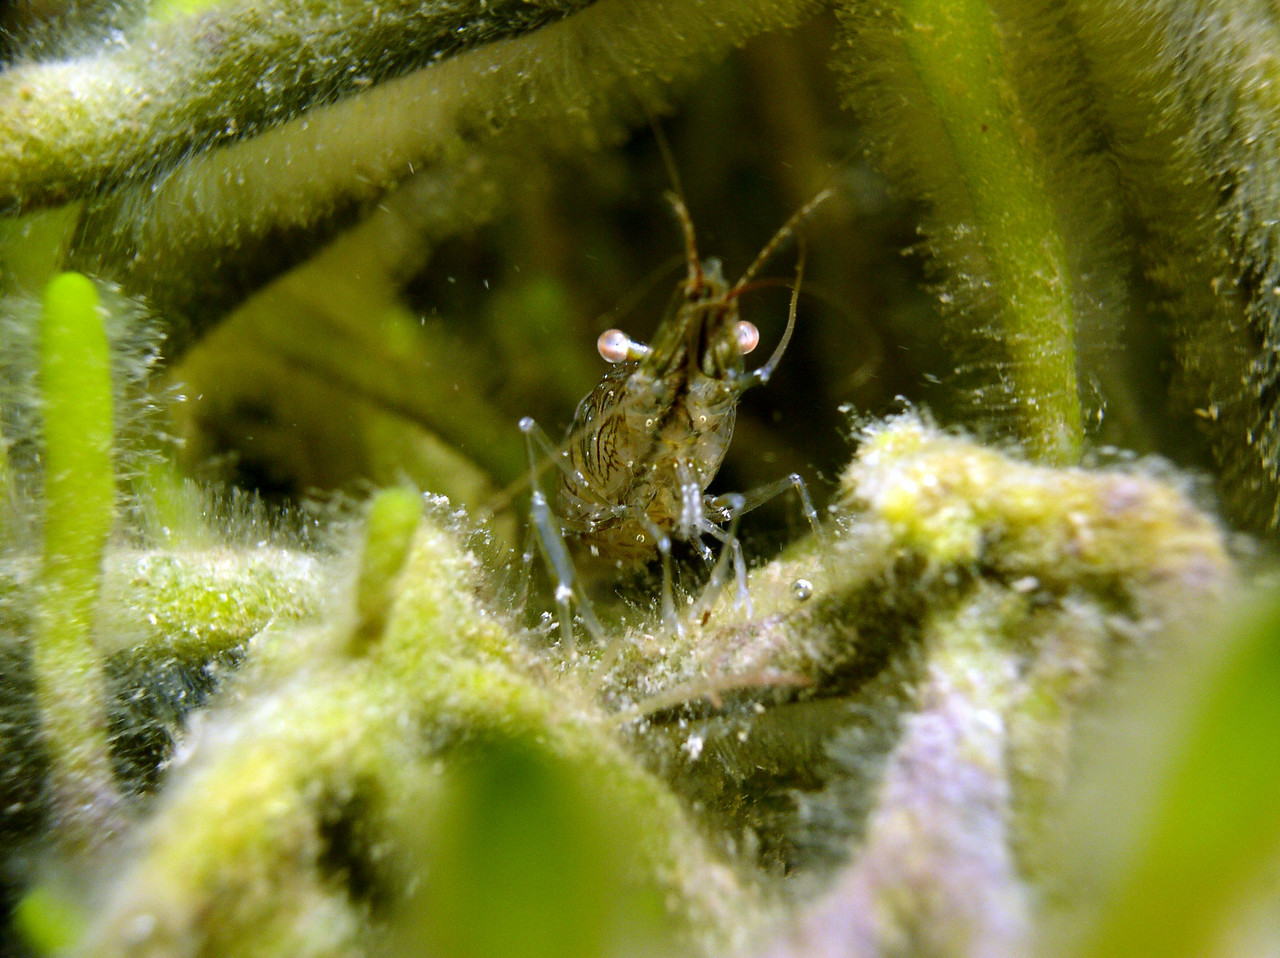 It can even feed on hydroids which are growing on green algae.  Hydroids are animals related to sea anemones, coral and even jellyfish.  They have stinging cells called nematocysts to capture there food.